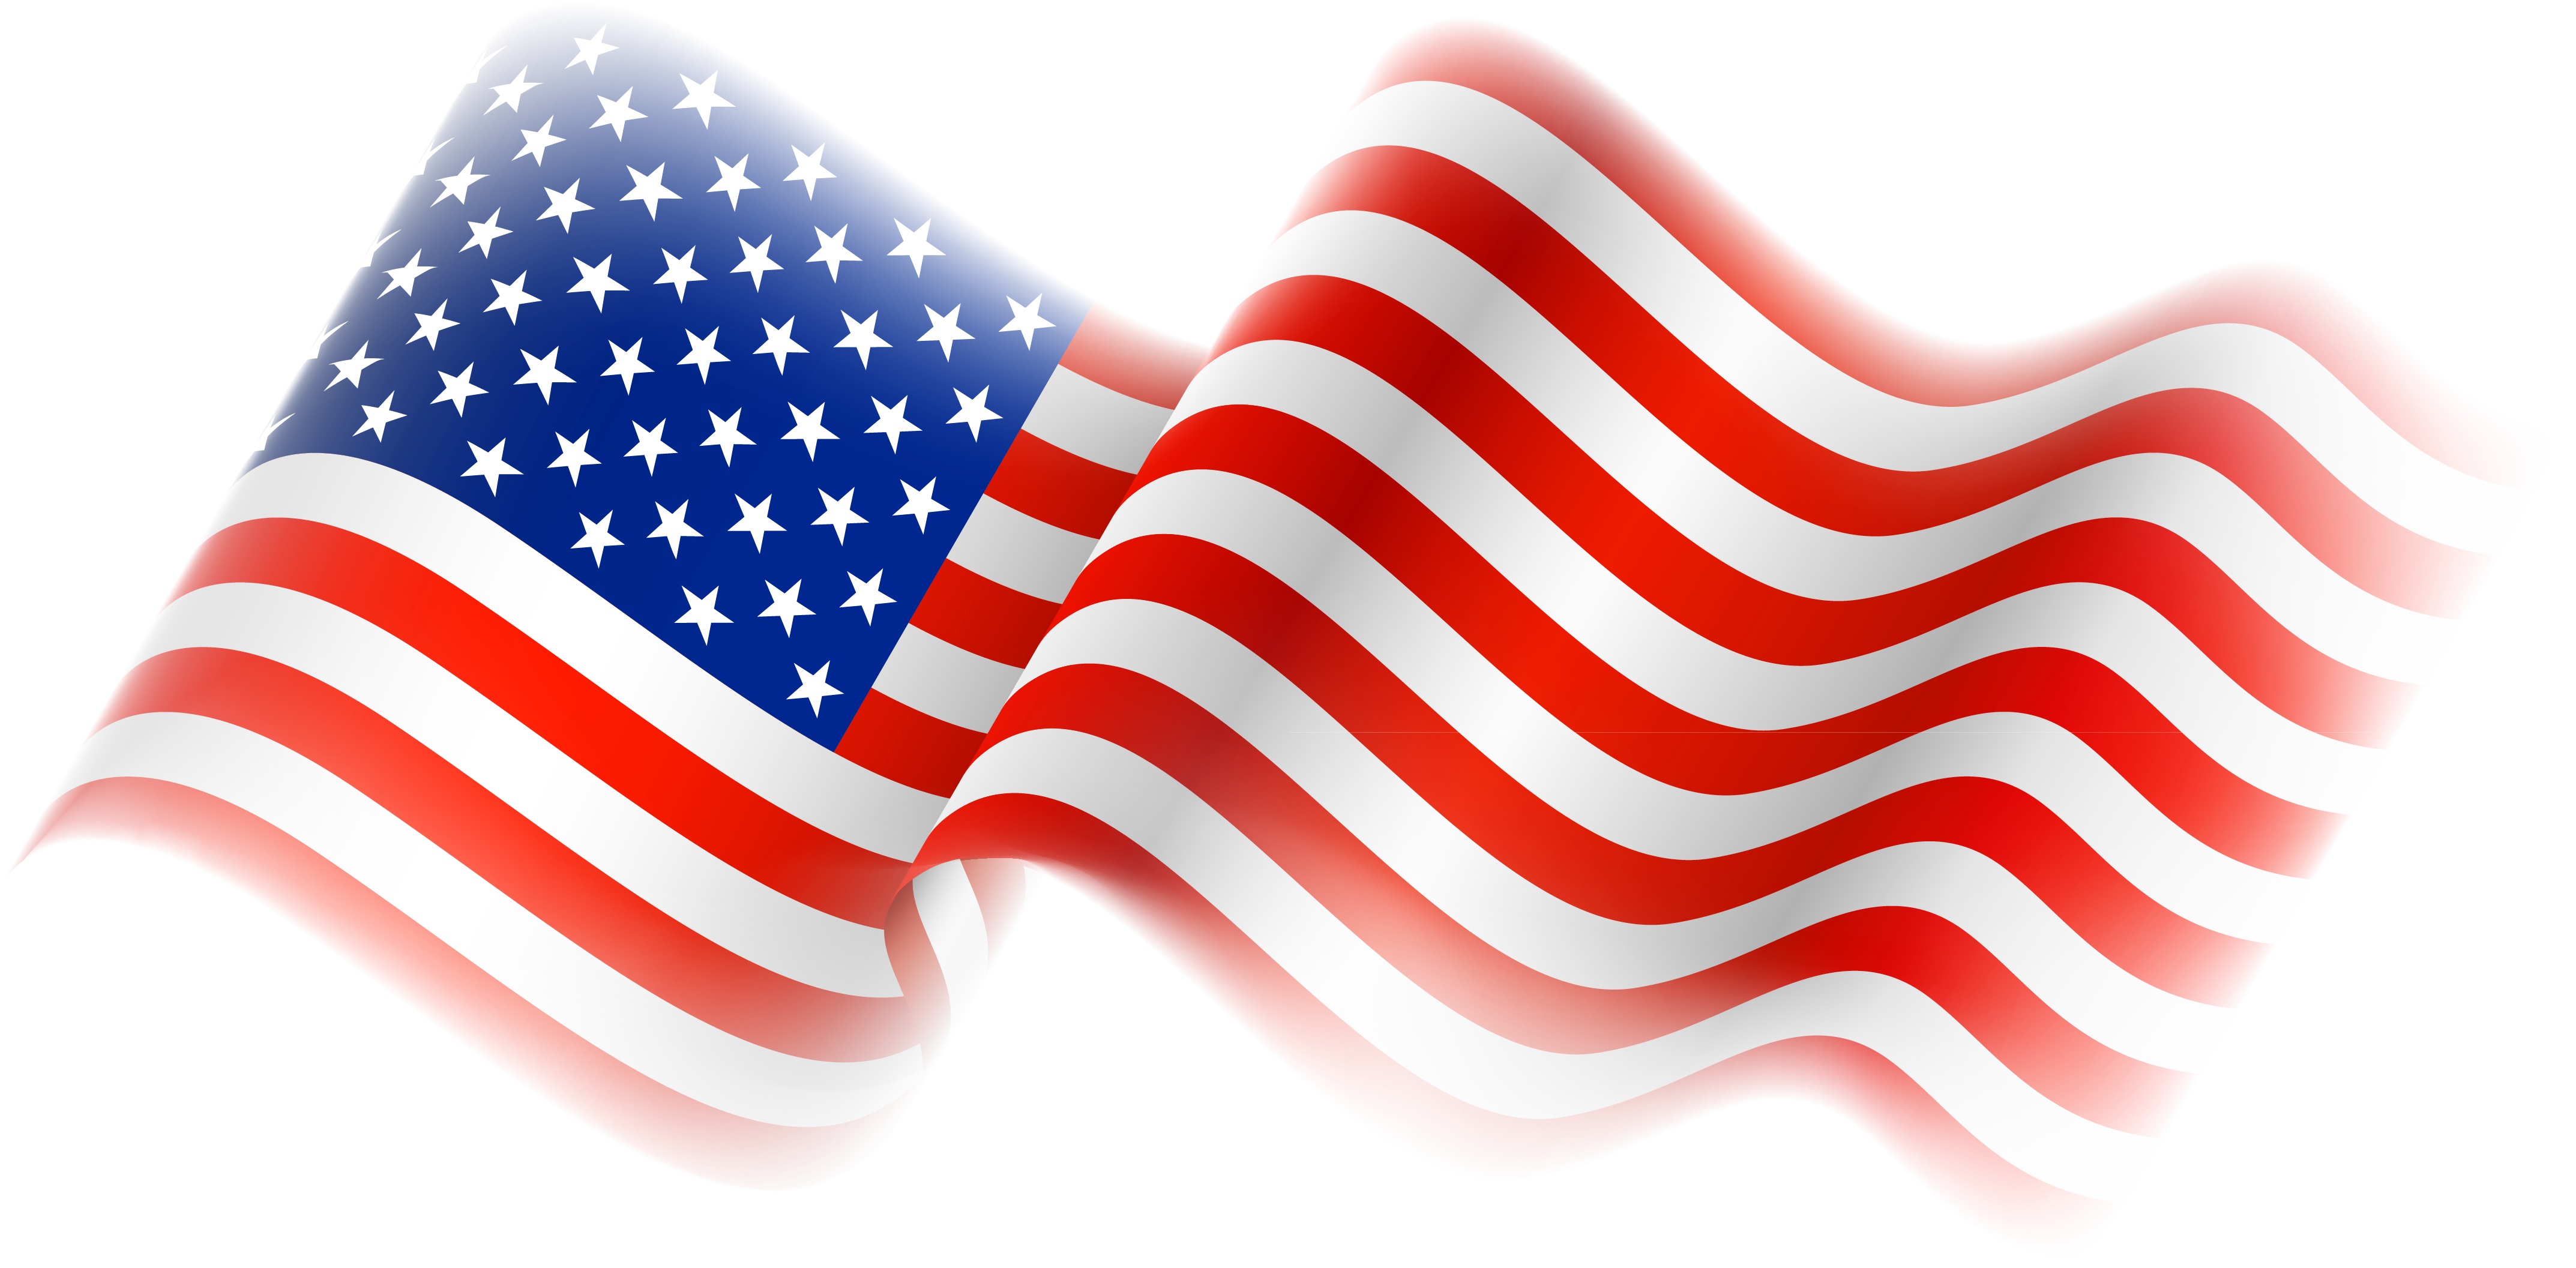 American Flag Png - American Flag Clipart 6 PNG Images